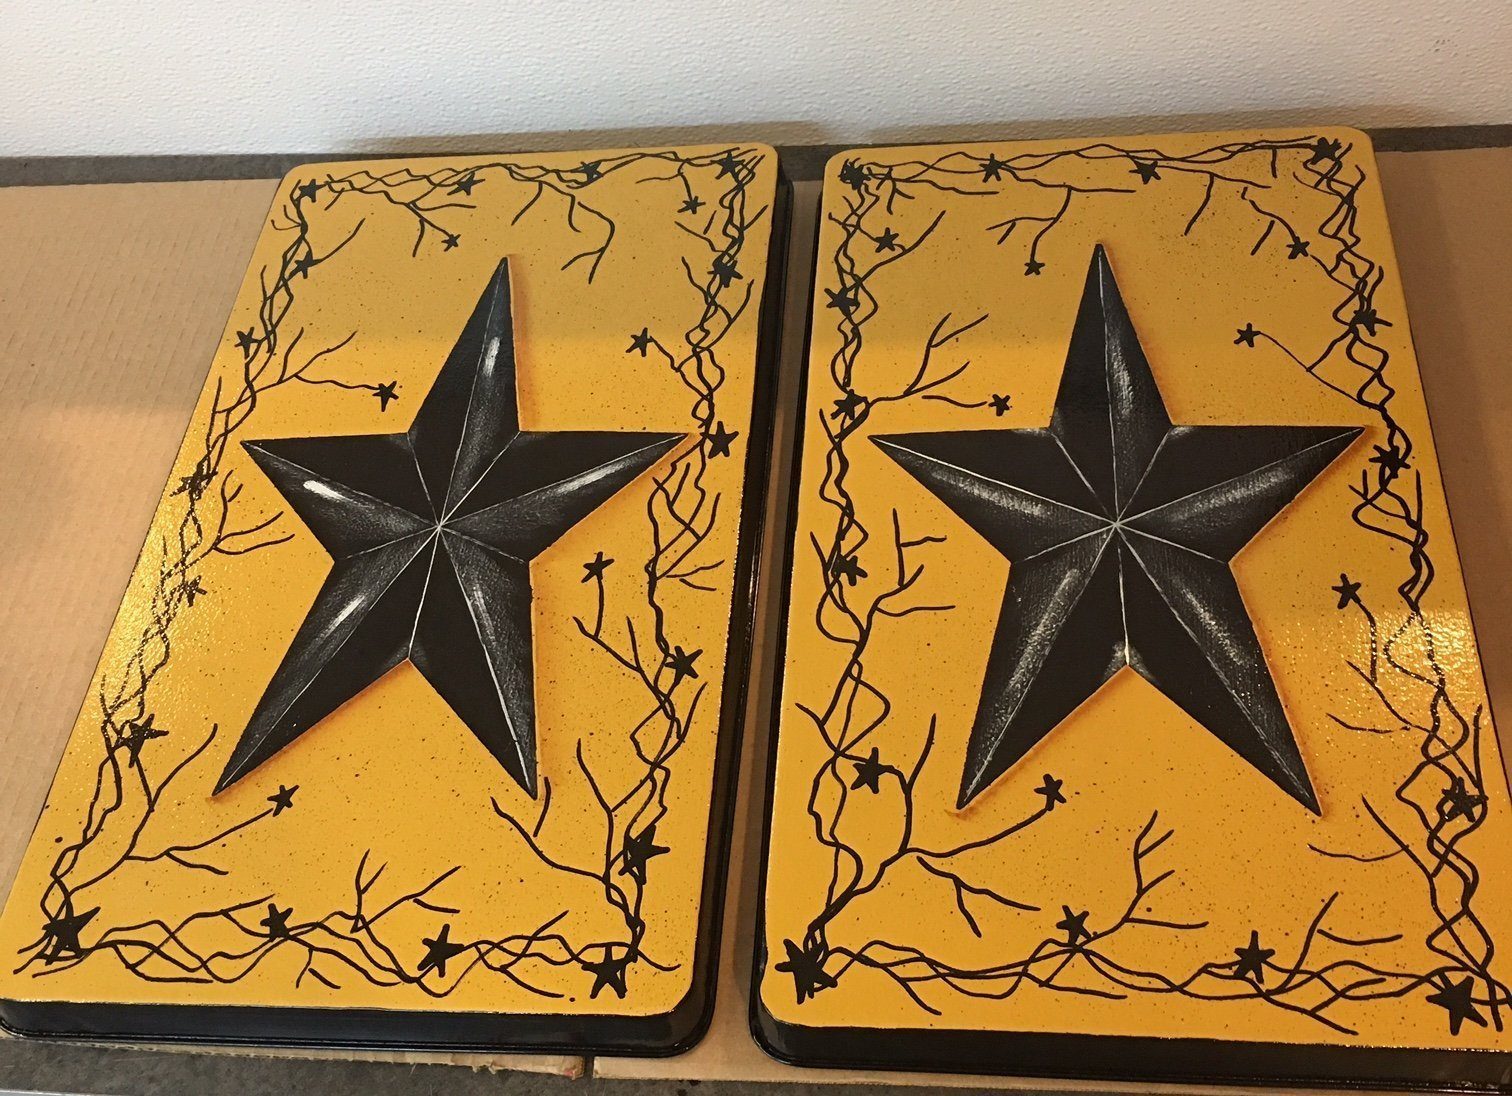 Texas Rustic Barn Star Stove Burner Cover Set Antique Gold by Primitive Country Loft House